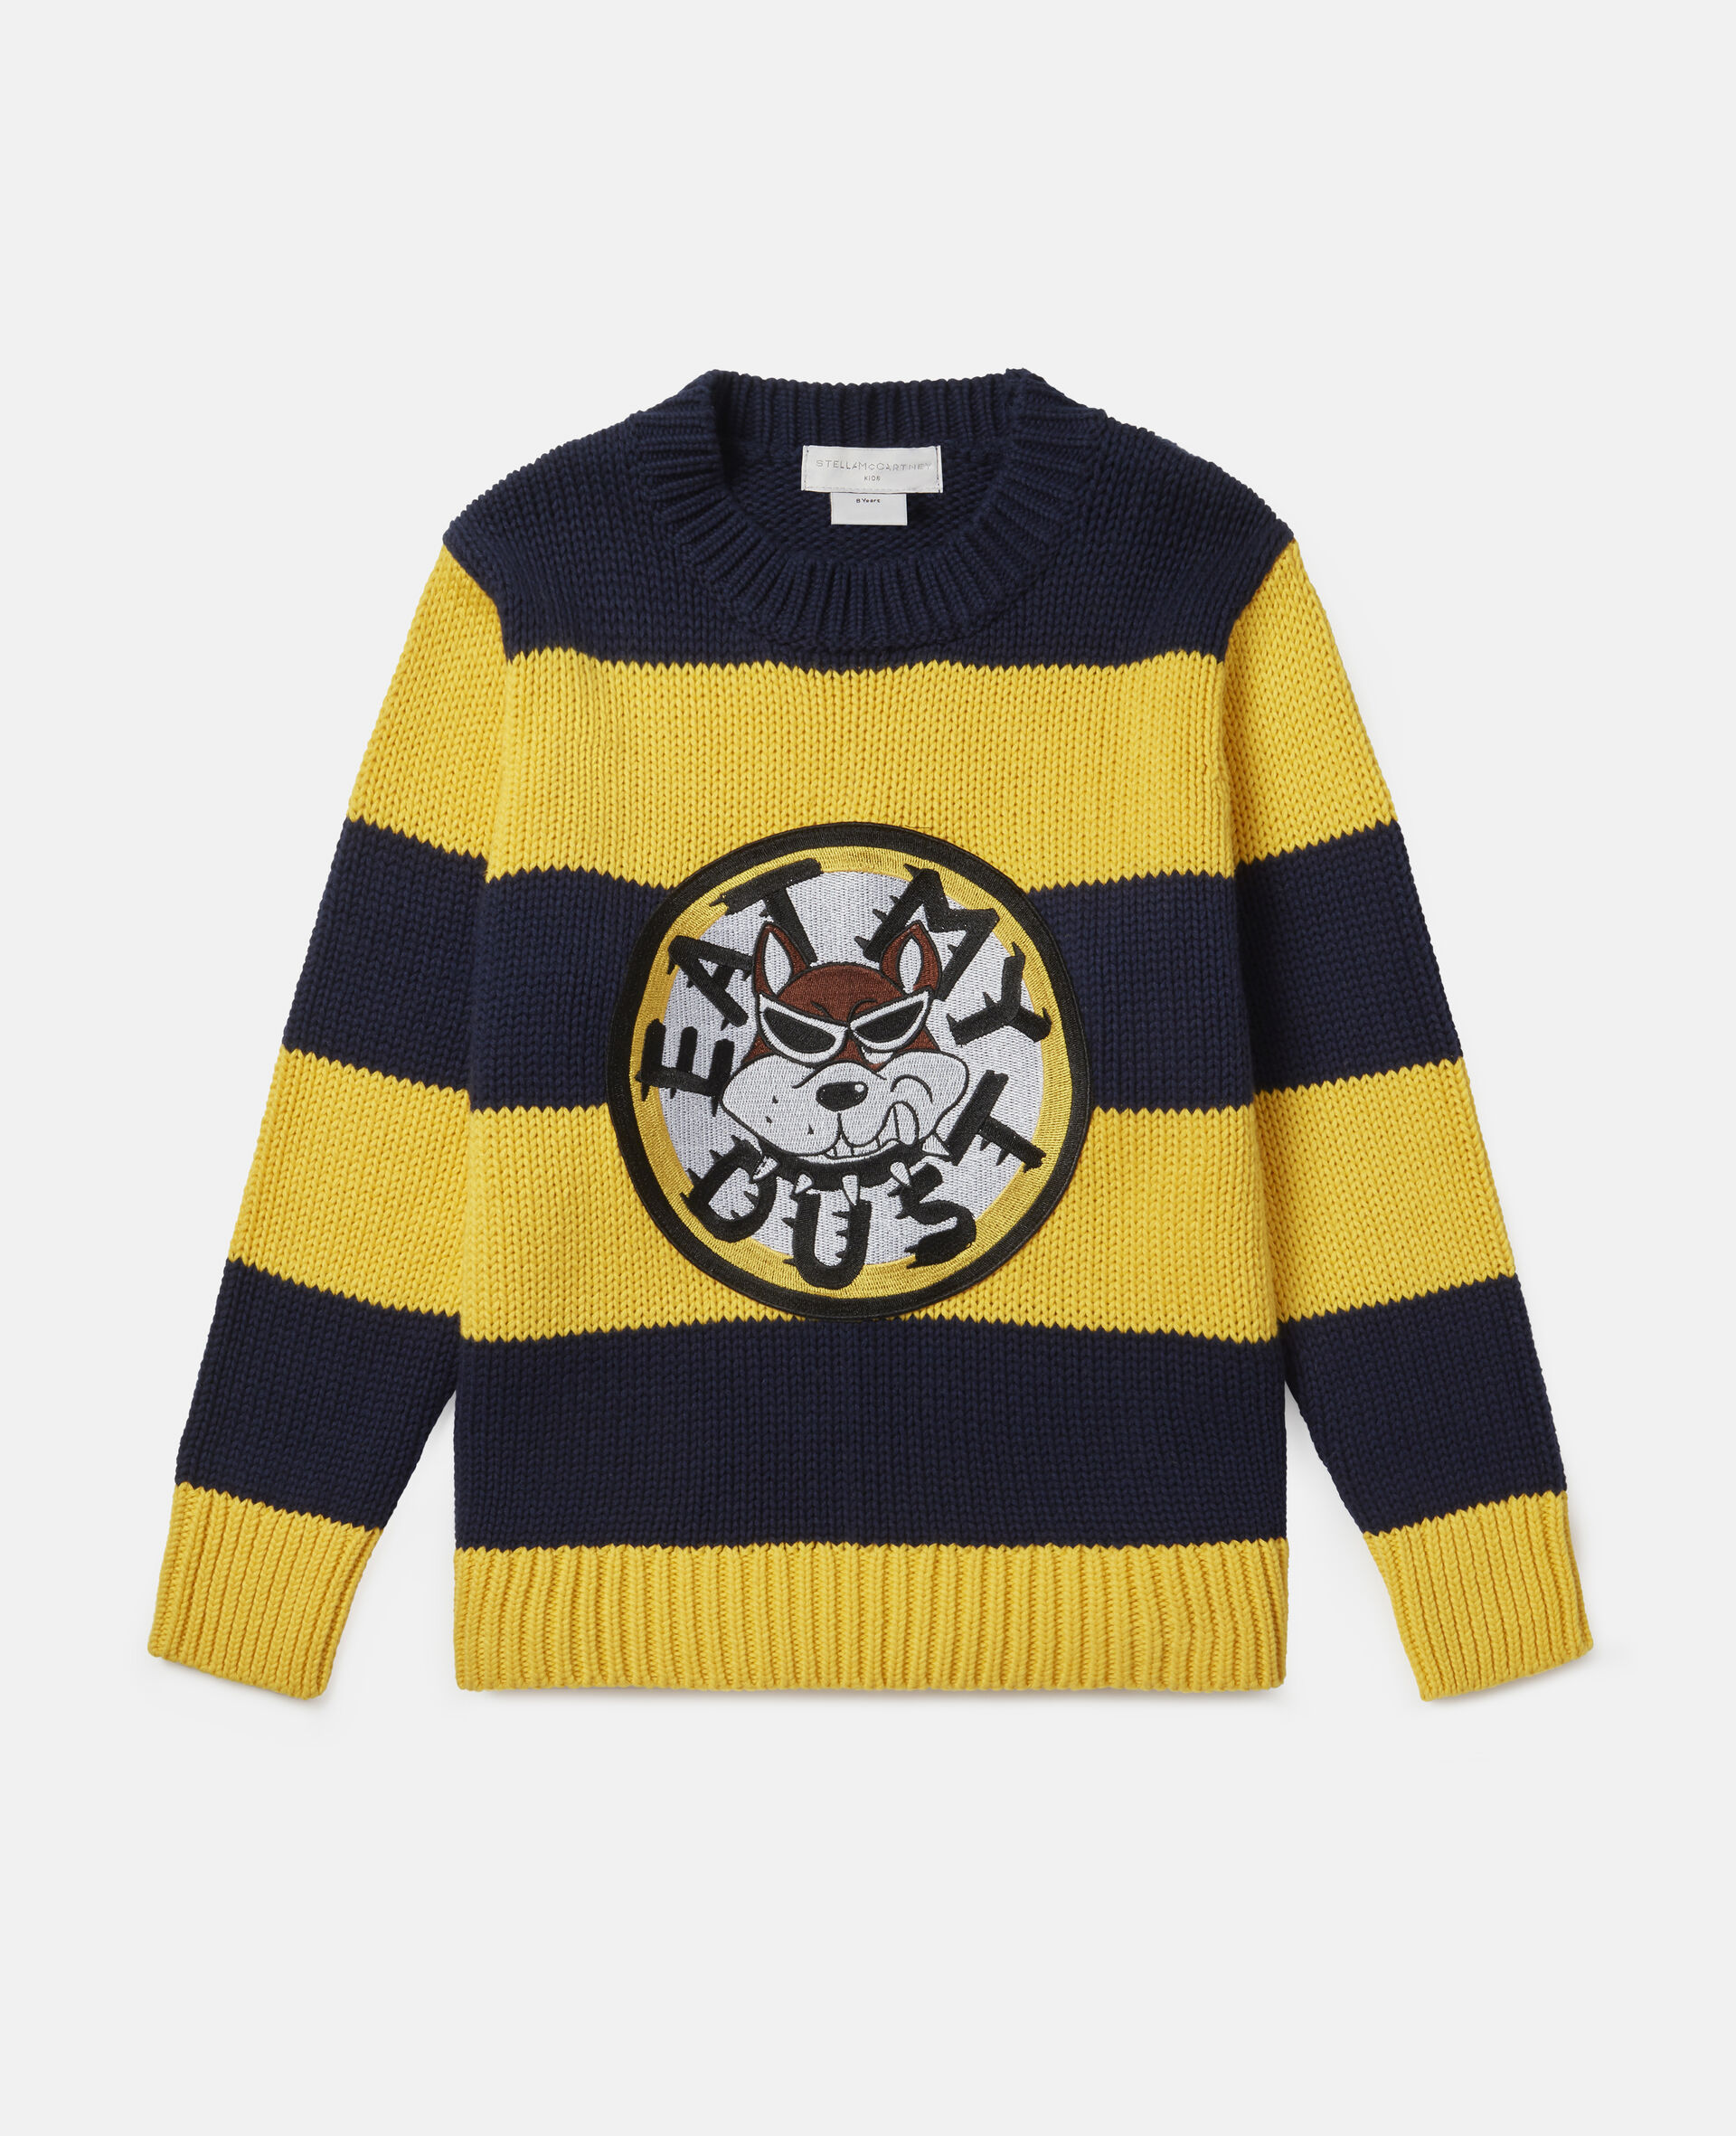 'Eat My Dust' Oversized Knit Jumper-Multicolour-large image number 0